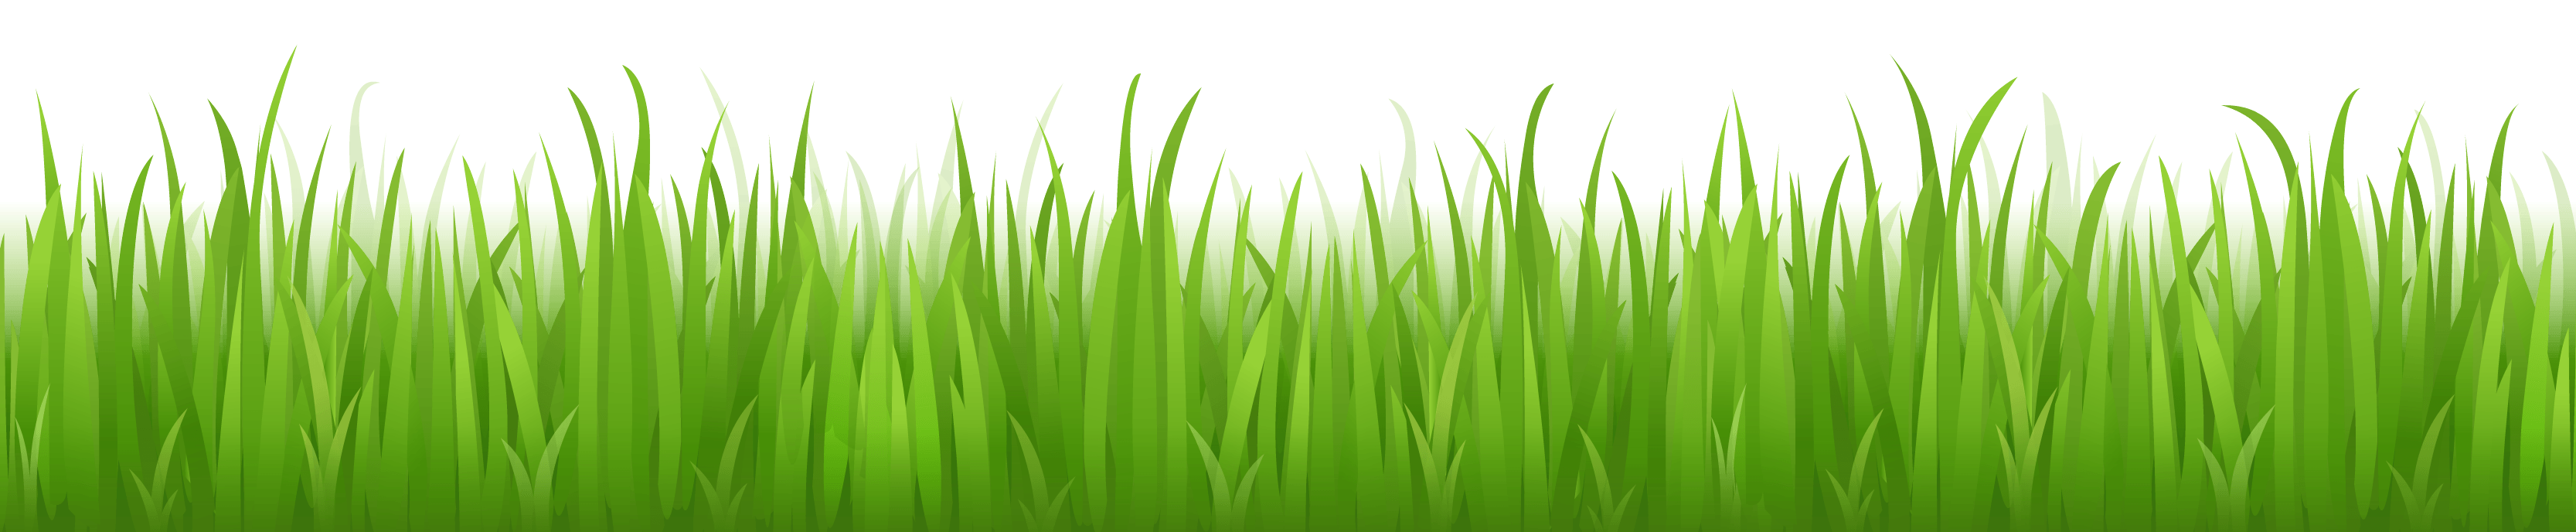 Grass Png Image Green Picture PNG Image